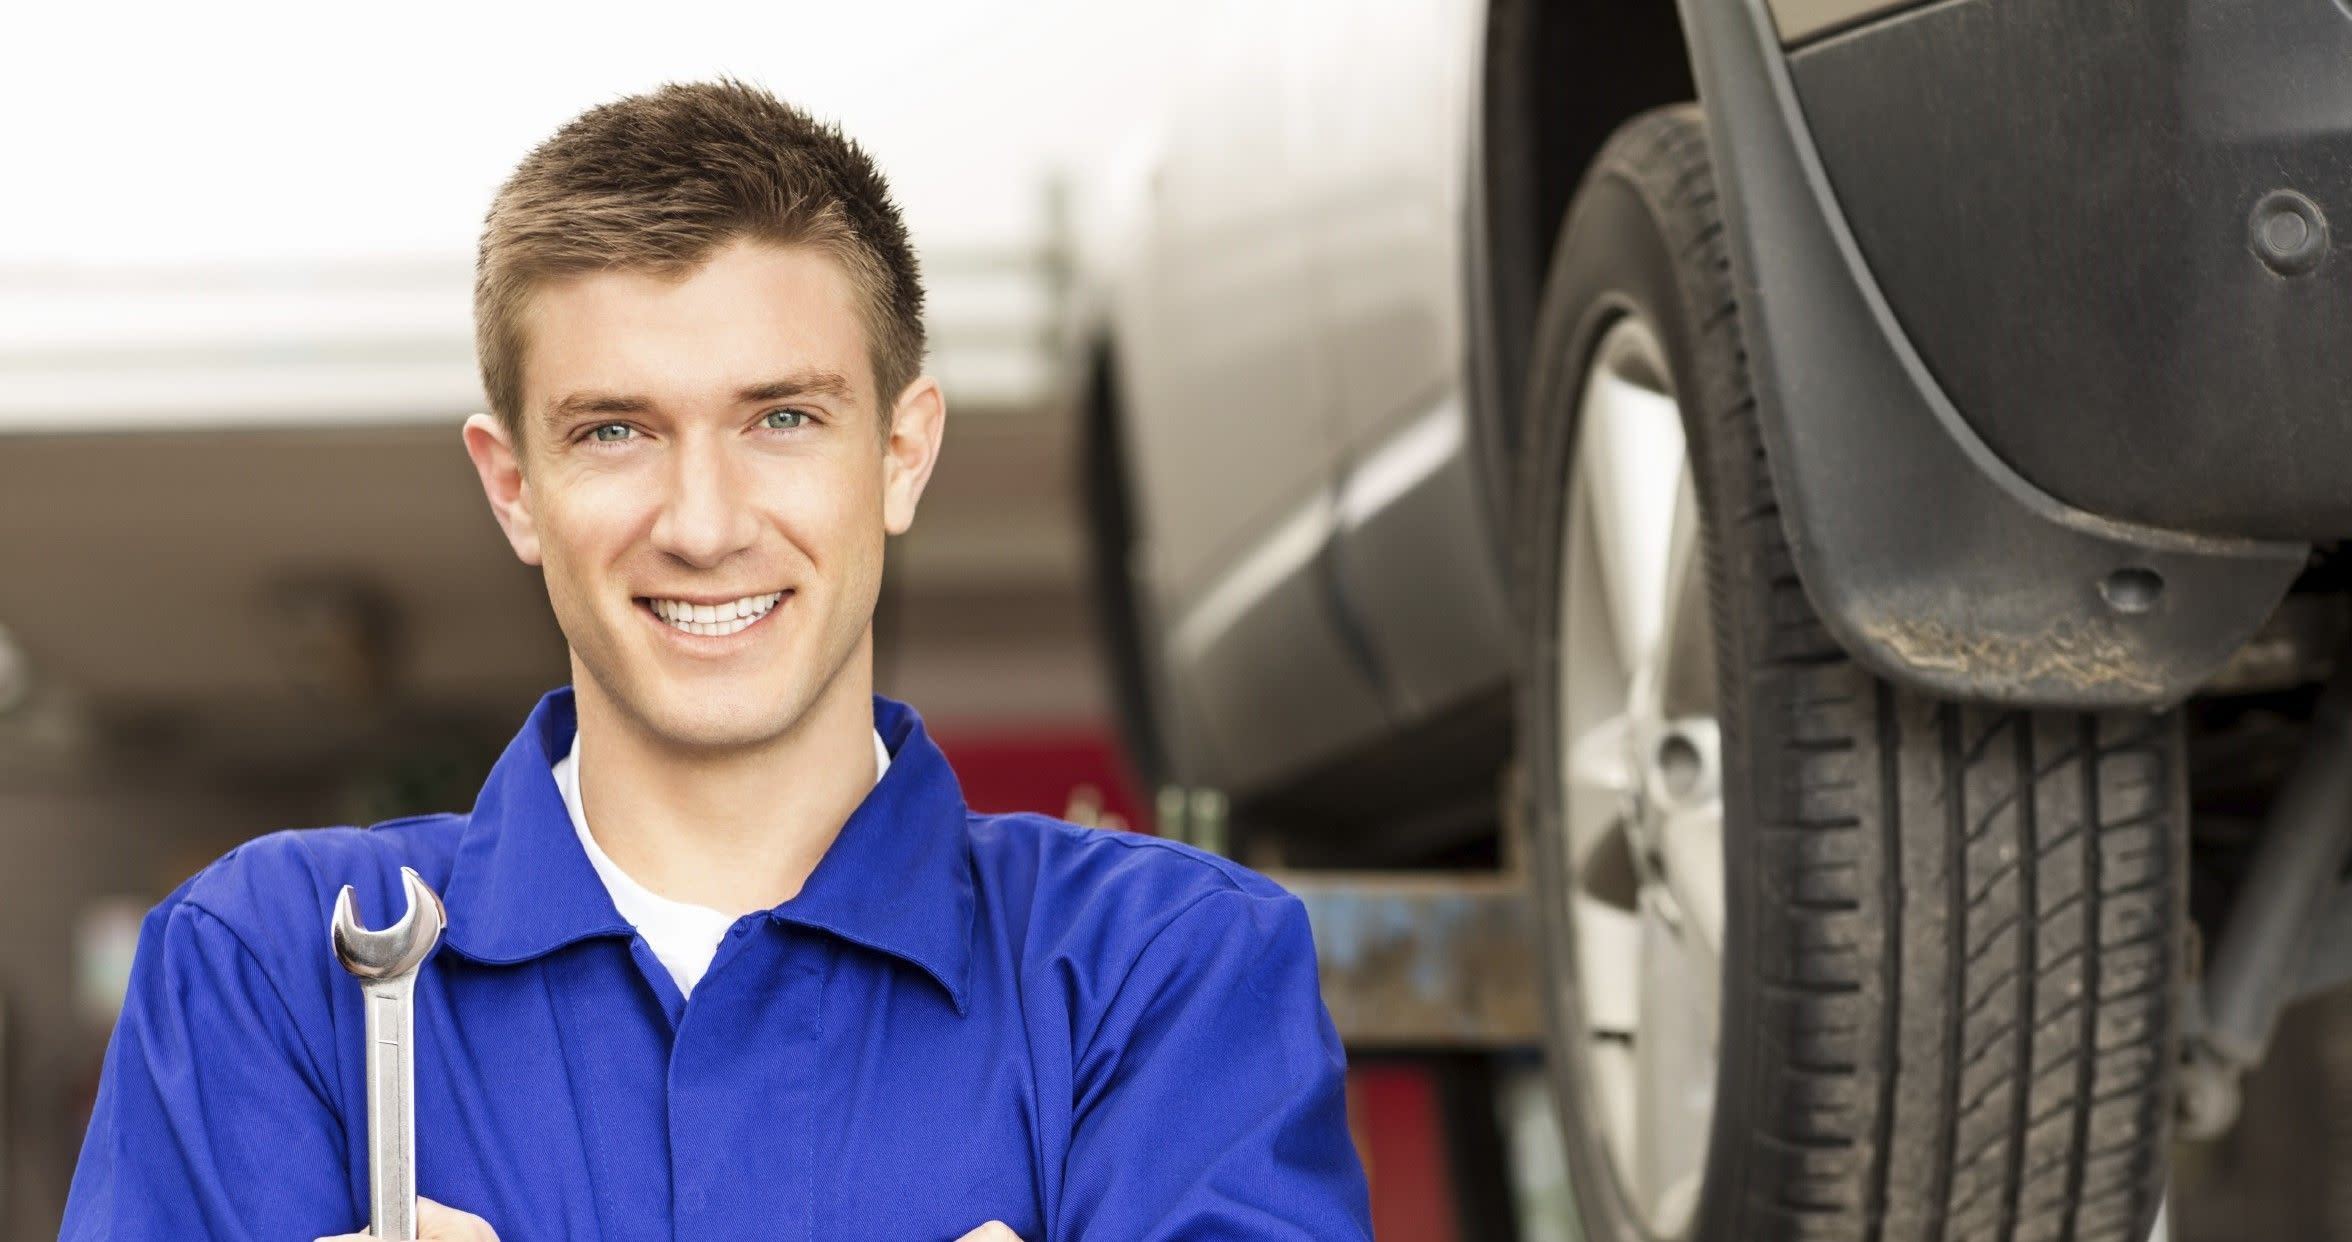 Great Oil Change Service Near Des Moines, IA. We Will Get You Back On The Road  Fast!